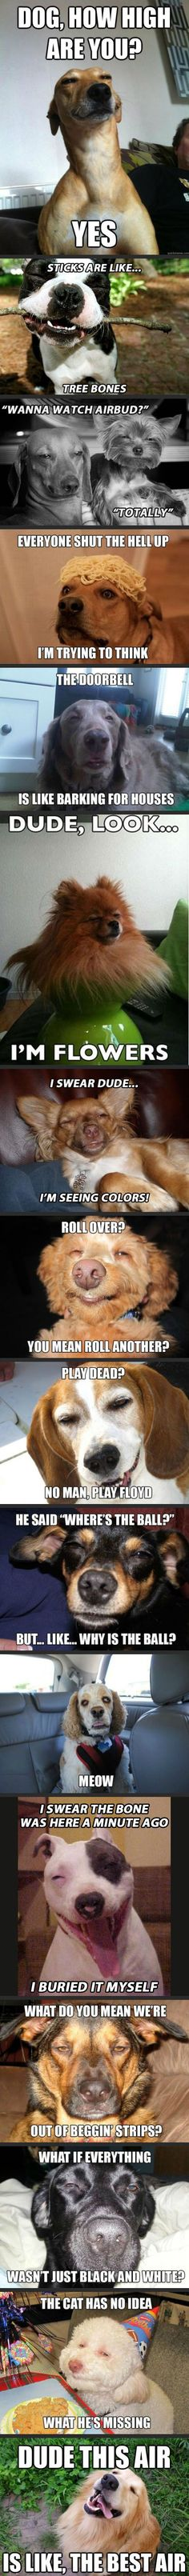 Dogs on drugs